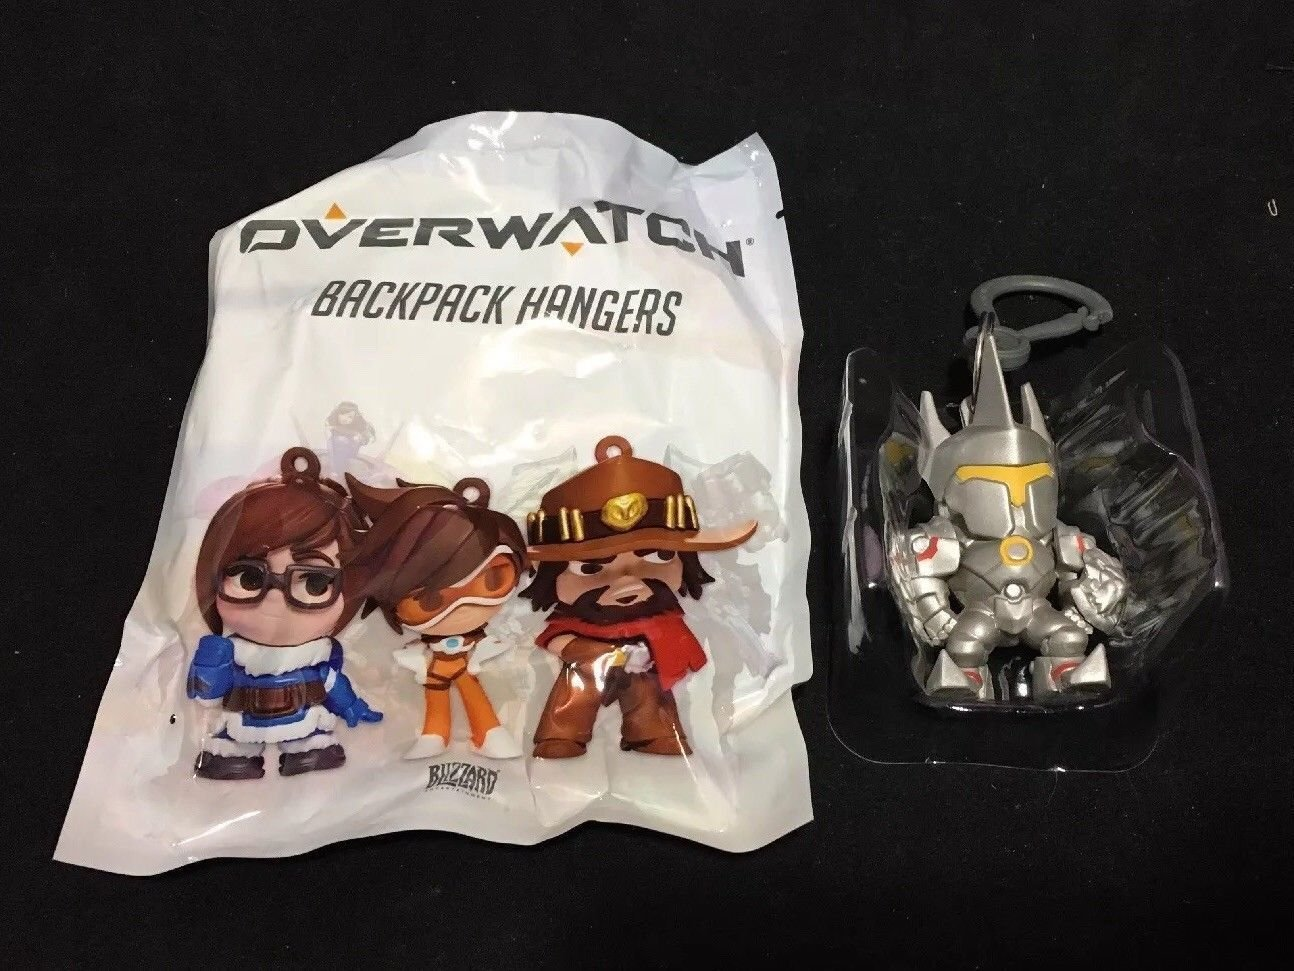 Overwatch Series 1 Backpack Hanger Reinhardt